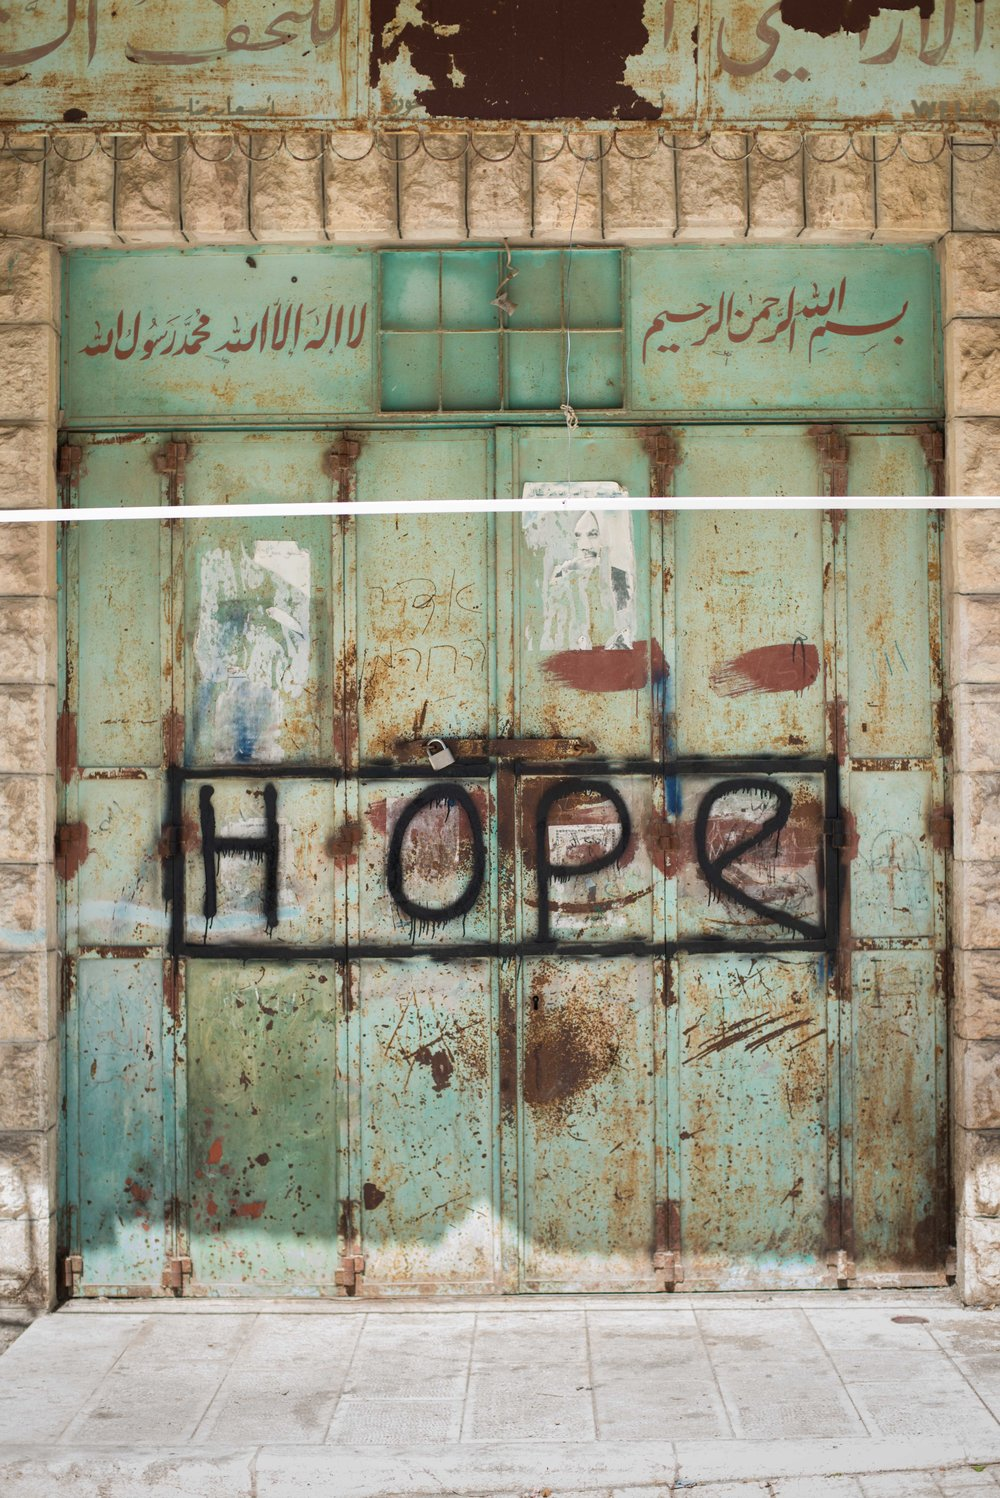 A shopkeeper's door, Hebron, West Bank, Palestine